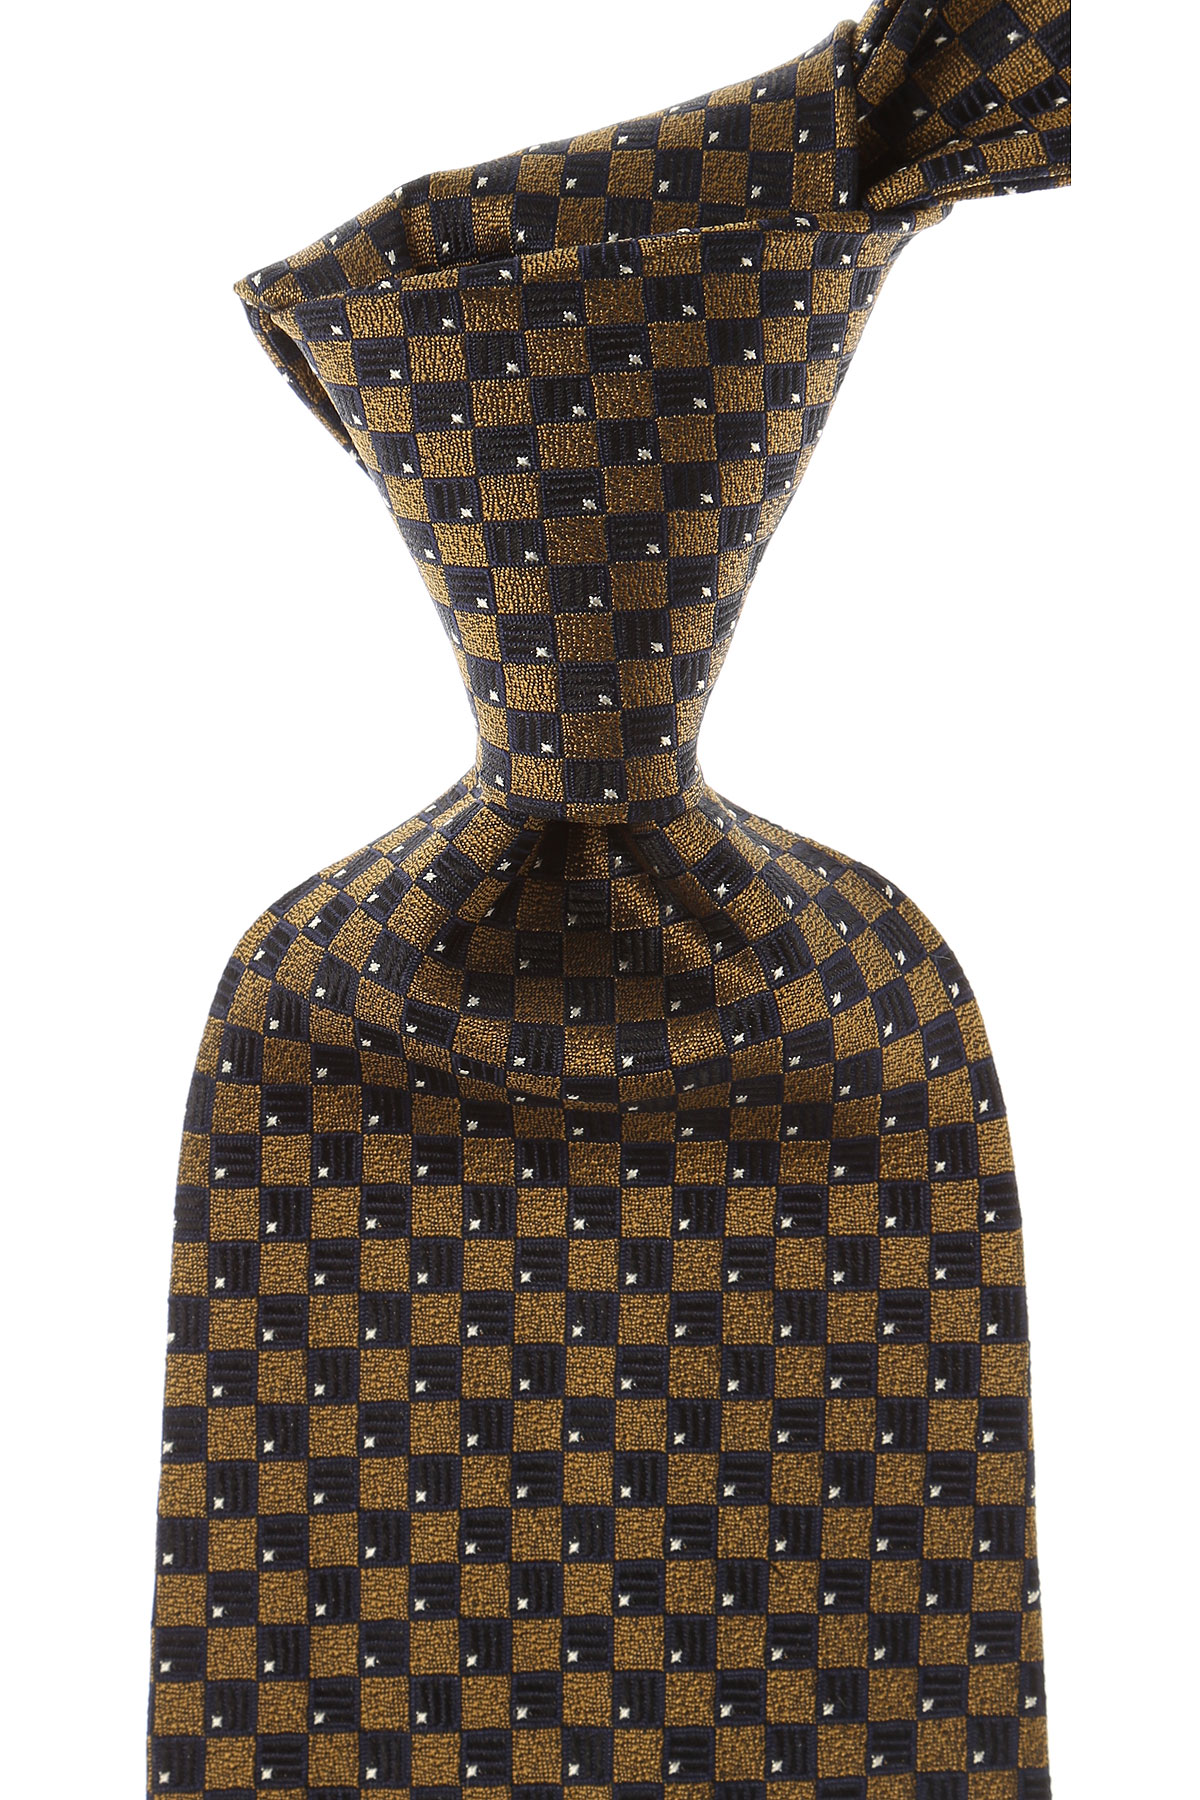 Balmain Ties On Sale, Bronze, Silk, 2019